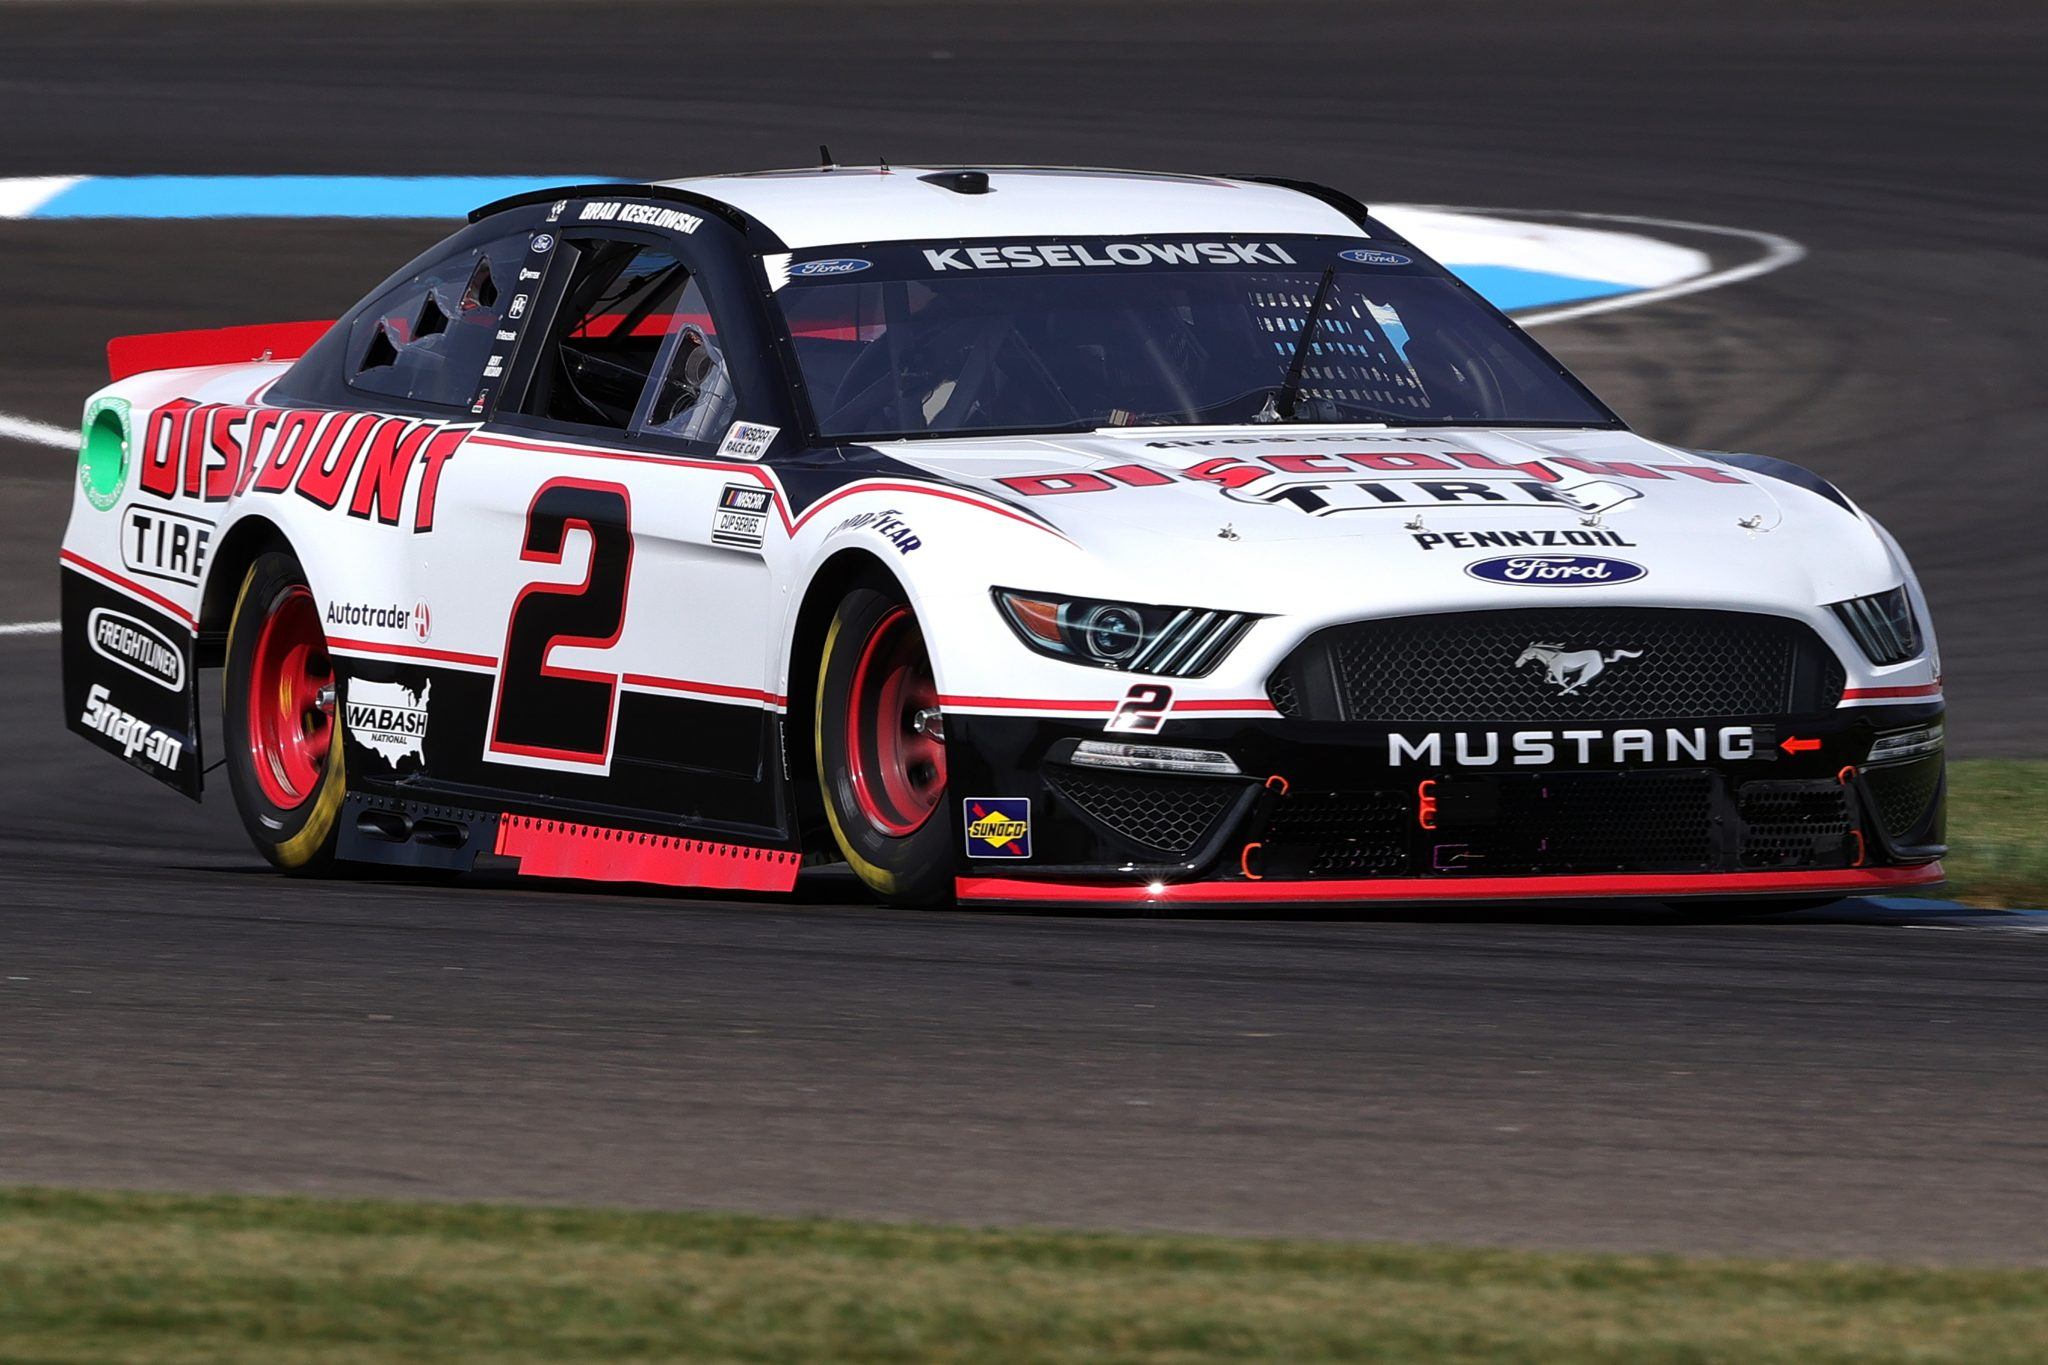 INDIANAPOLIS, INDIANA - AUGUST 14: Brad Keselowski, driver of the #2 Discount Tire Ford, drives during practice for the NASCAR Cup Series Verizon 200 at the Brickyard at Indianapolis Motor Speedway on August 14, 2021 in Indianapolis, Indiana. (Photo by Stacy Revere/Getty Images)   Getty Images